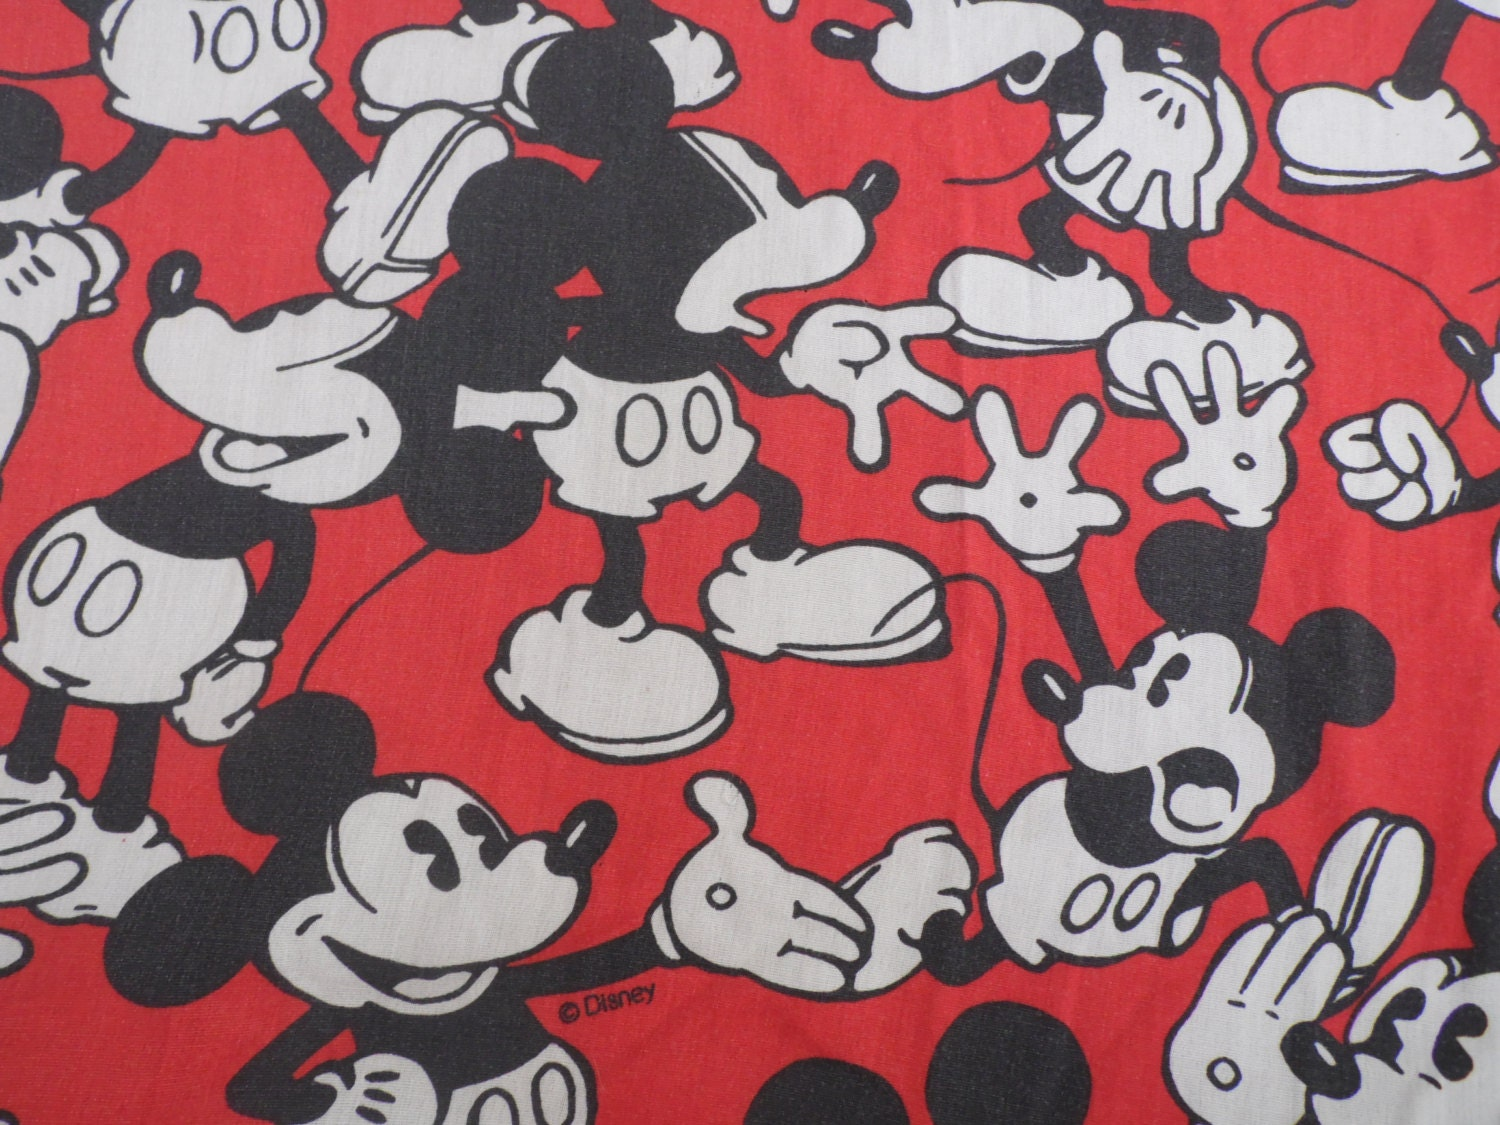 Mickey mouse head Etsy